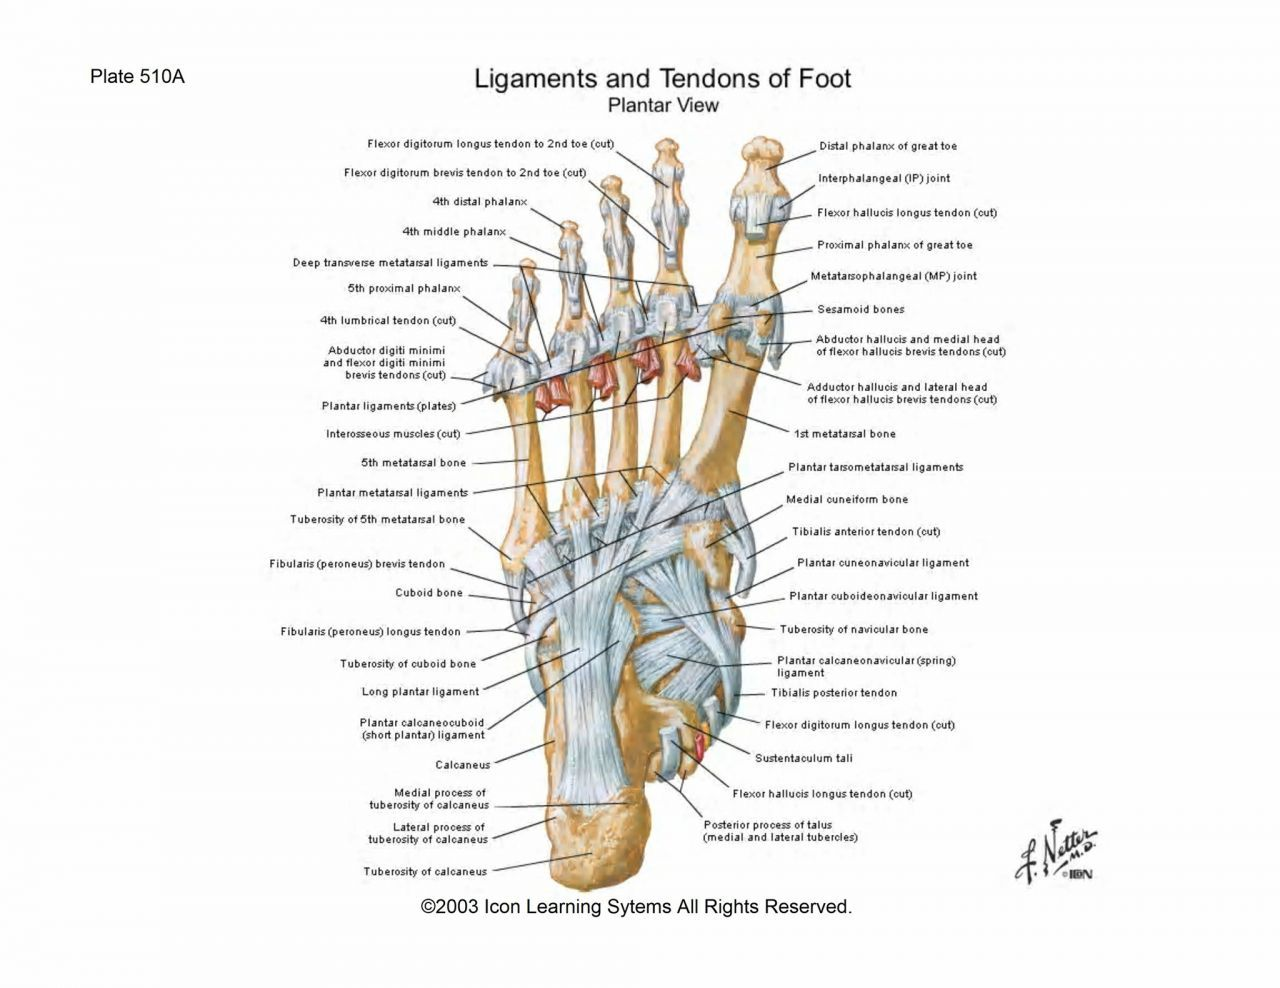 Ligaments Of The Foot - See more about Ligaments Of The Foot ...